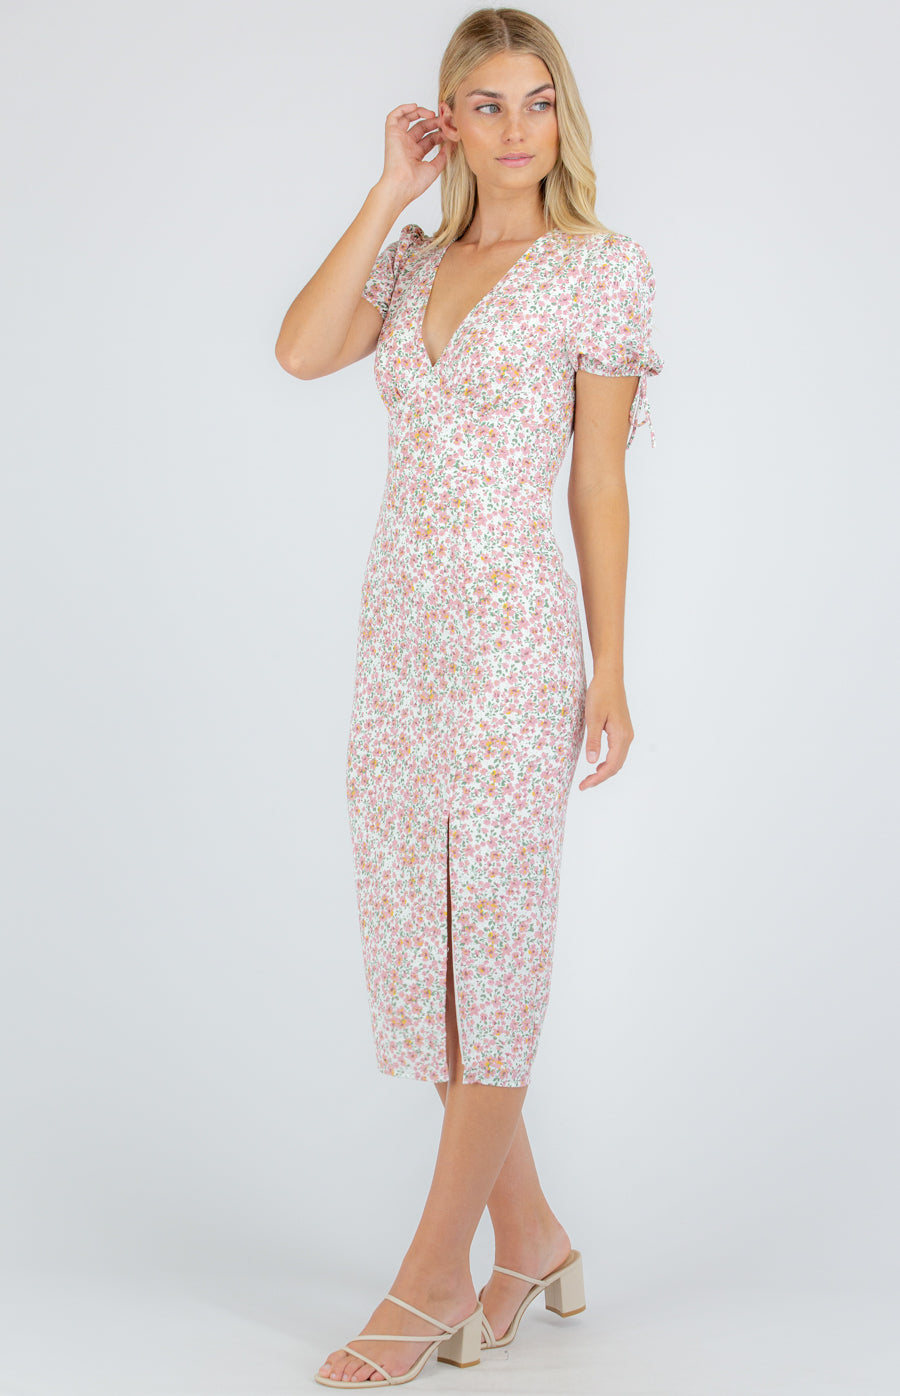 Pretty midi dress in pale pink rose print with short puff sleeves, v neck and front leg split.